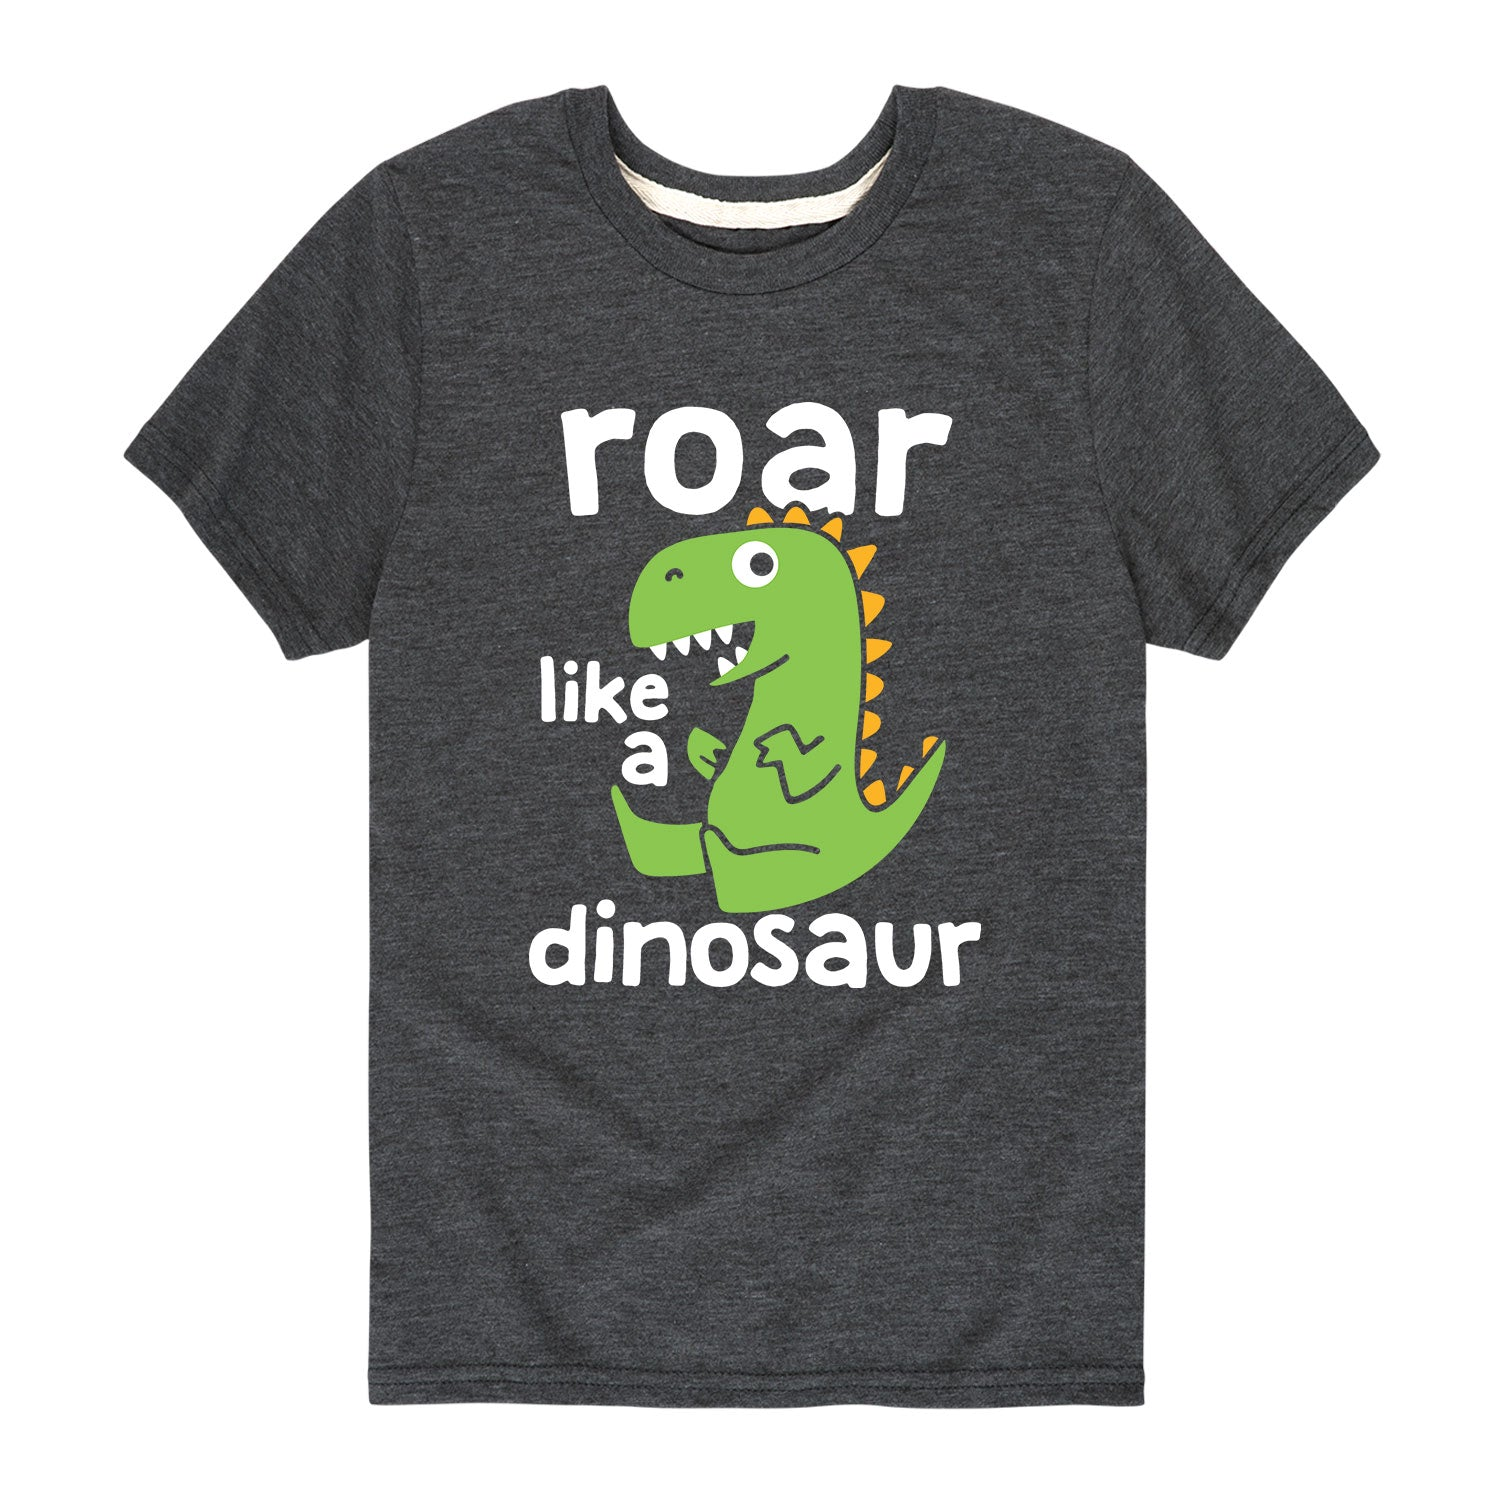 Roar Like a Dinosaur - Toddler Short Sleeve T-Shirt